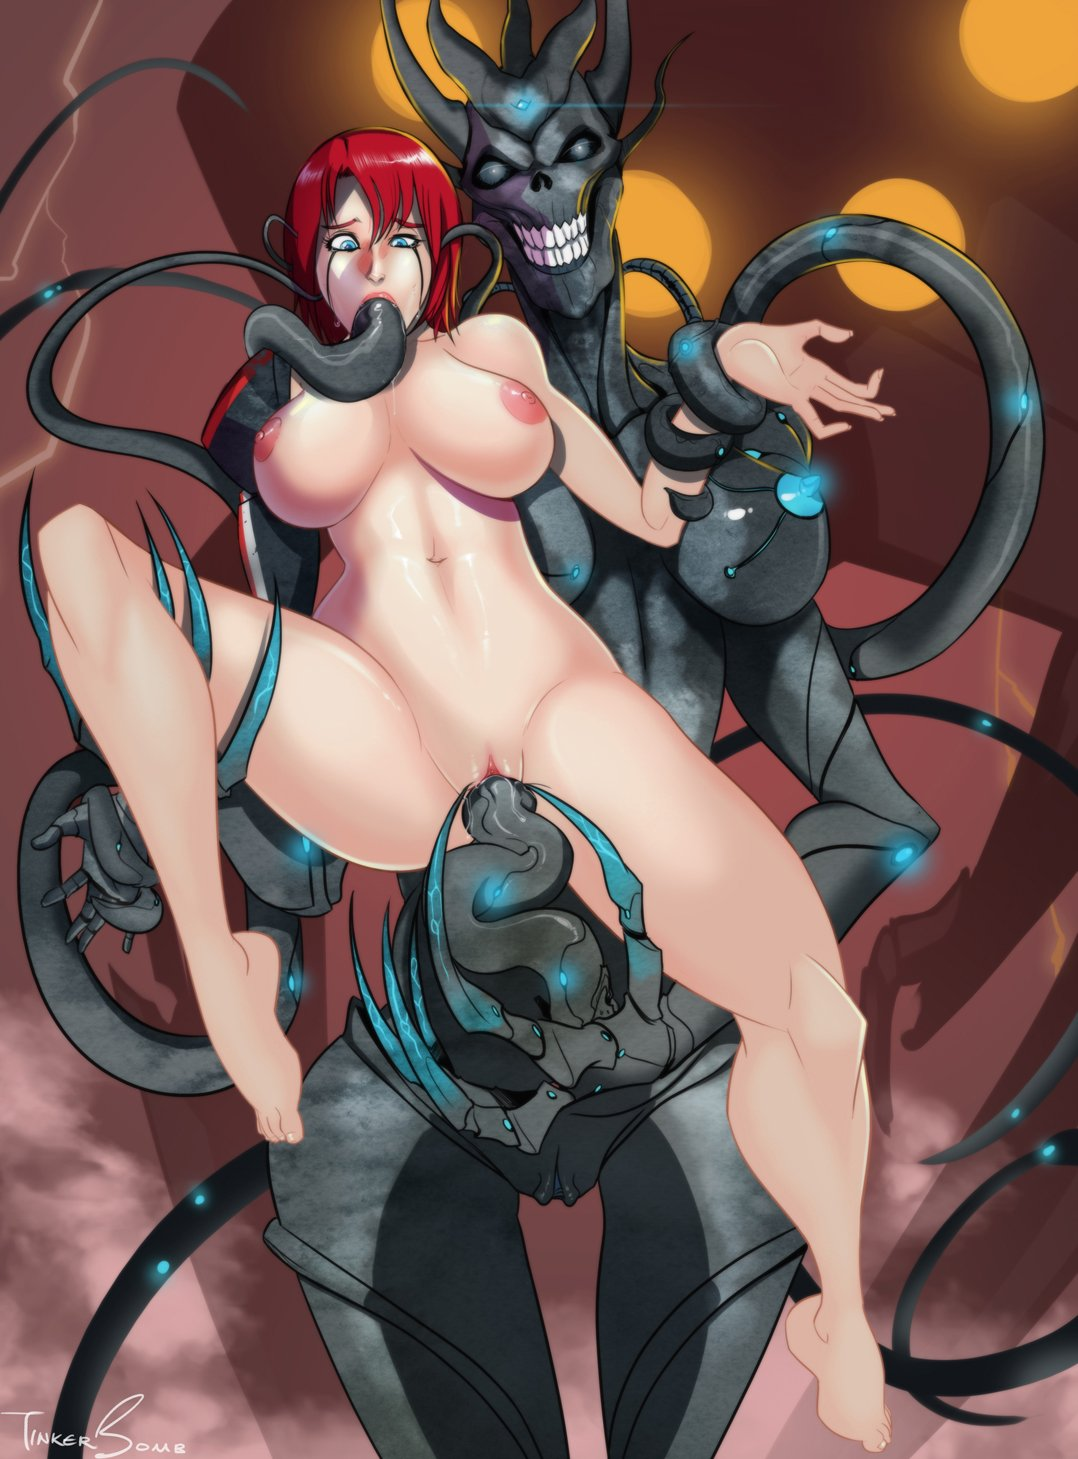 Mass effect tentacle monster porno videos xxx clip